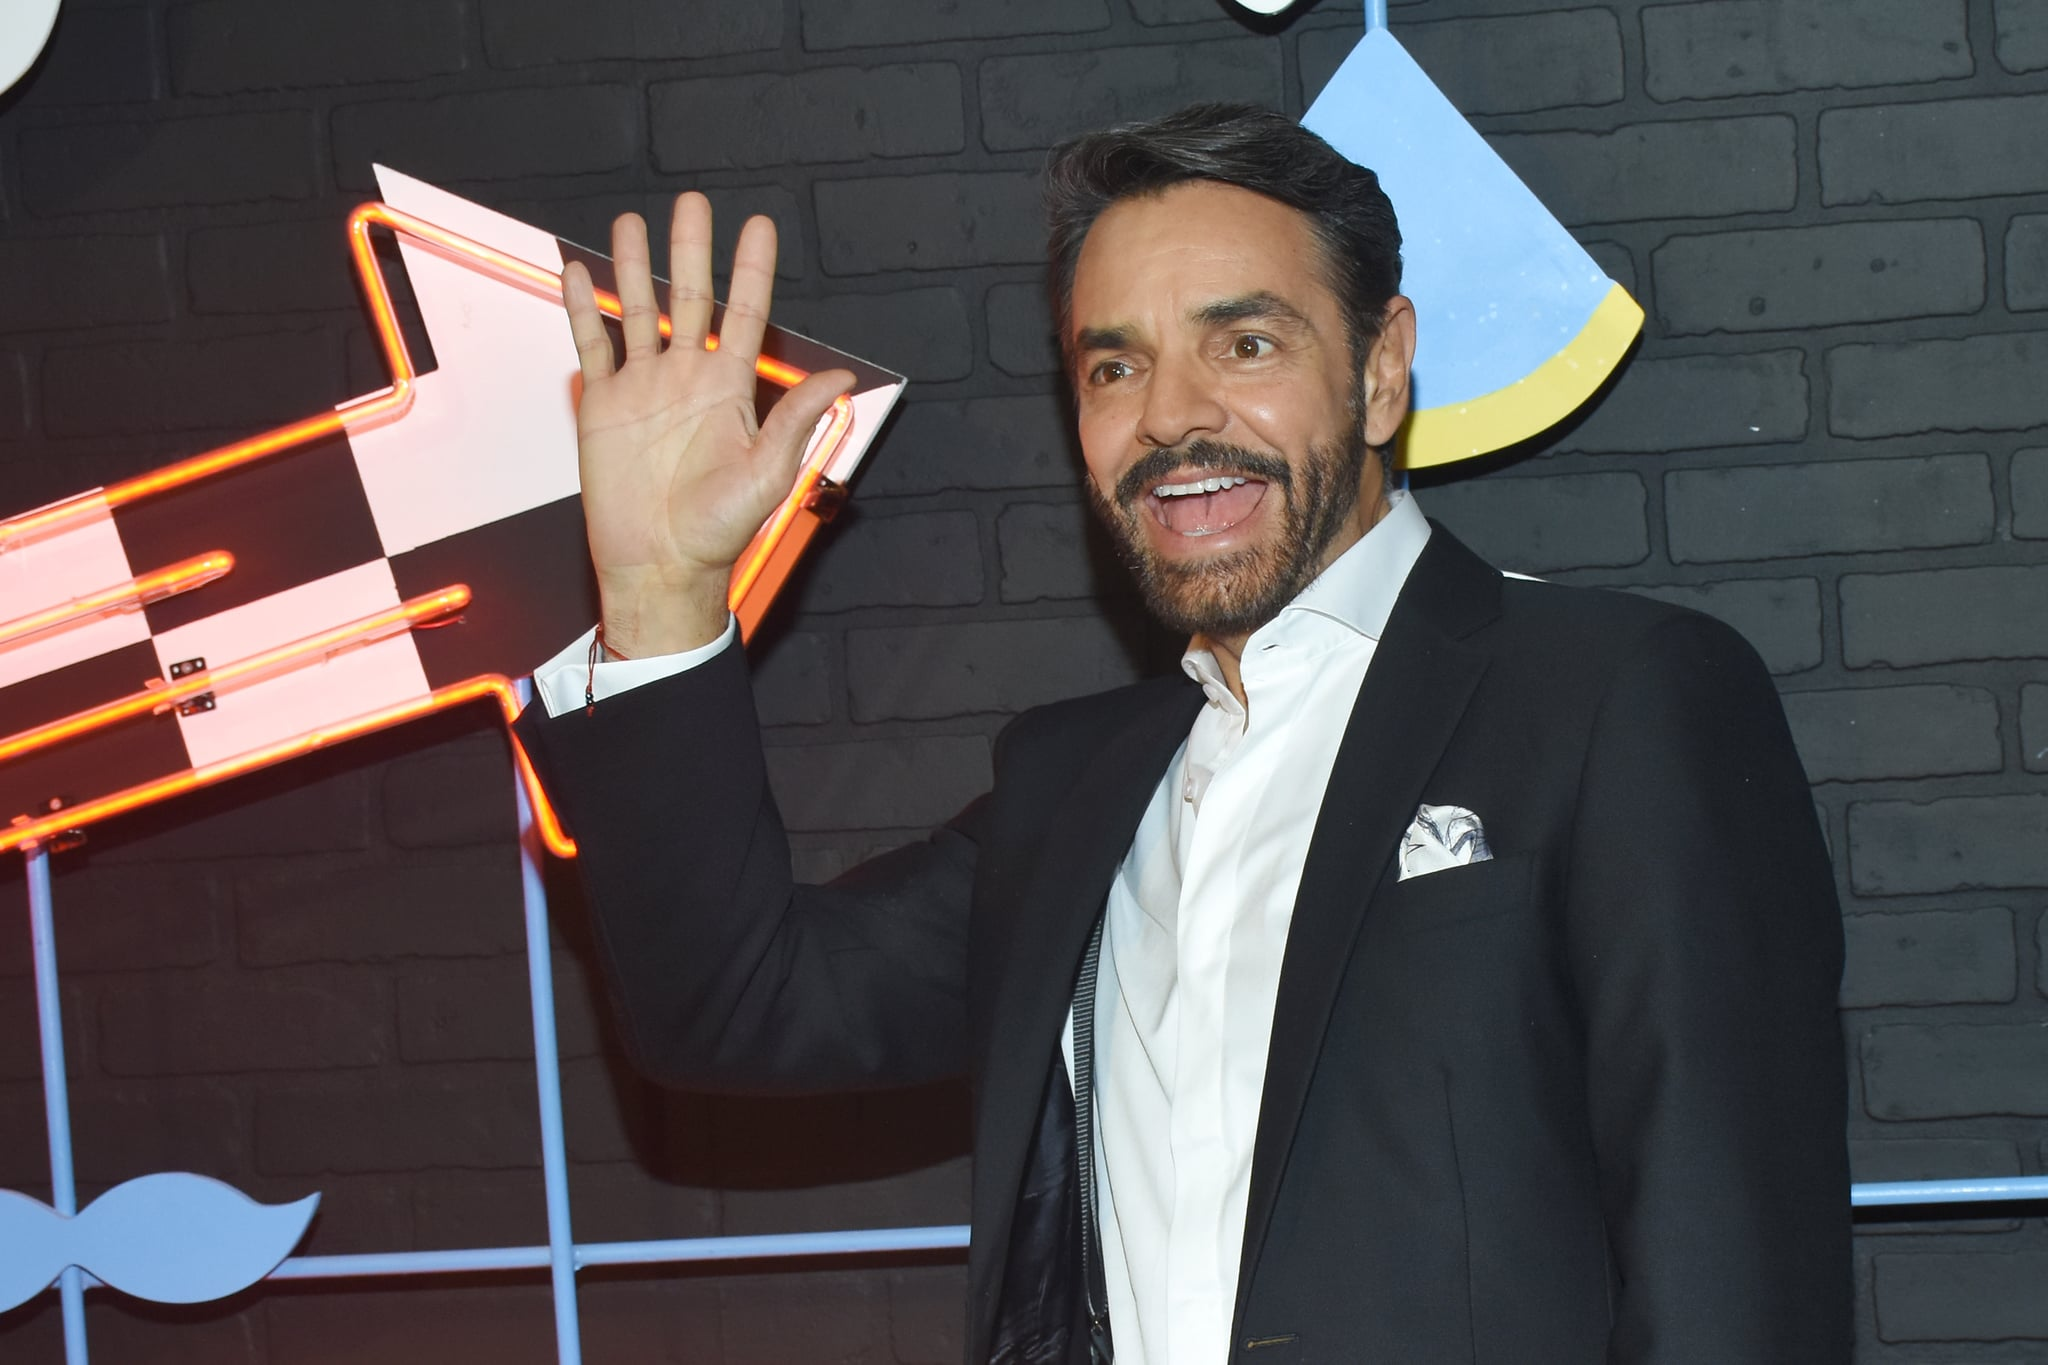 MEXICO CITY, MEXICO - DECEMBER 04: Eugenio Derbez  poses for photos during the red carpet of the new series 'LOL Last One Laughing' by Amazon Prime Video at Lago Tanganica 67 on December 4, 2018 in Mexico City, Mexico. (Photo by Carlos Tischler/Getty Images)